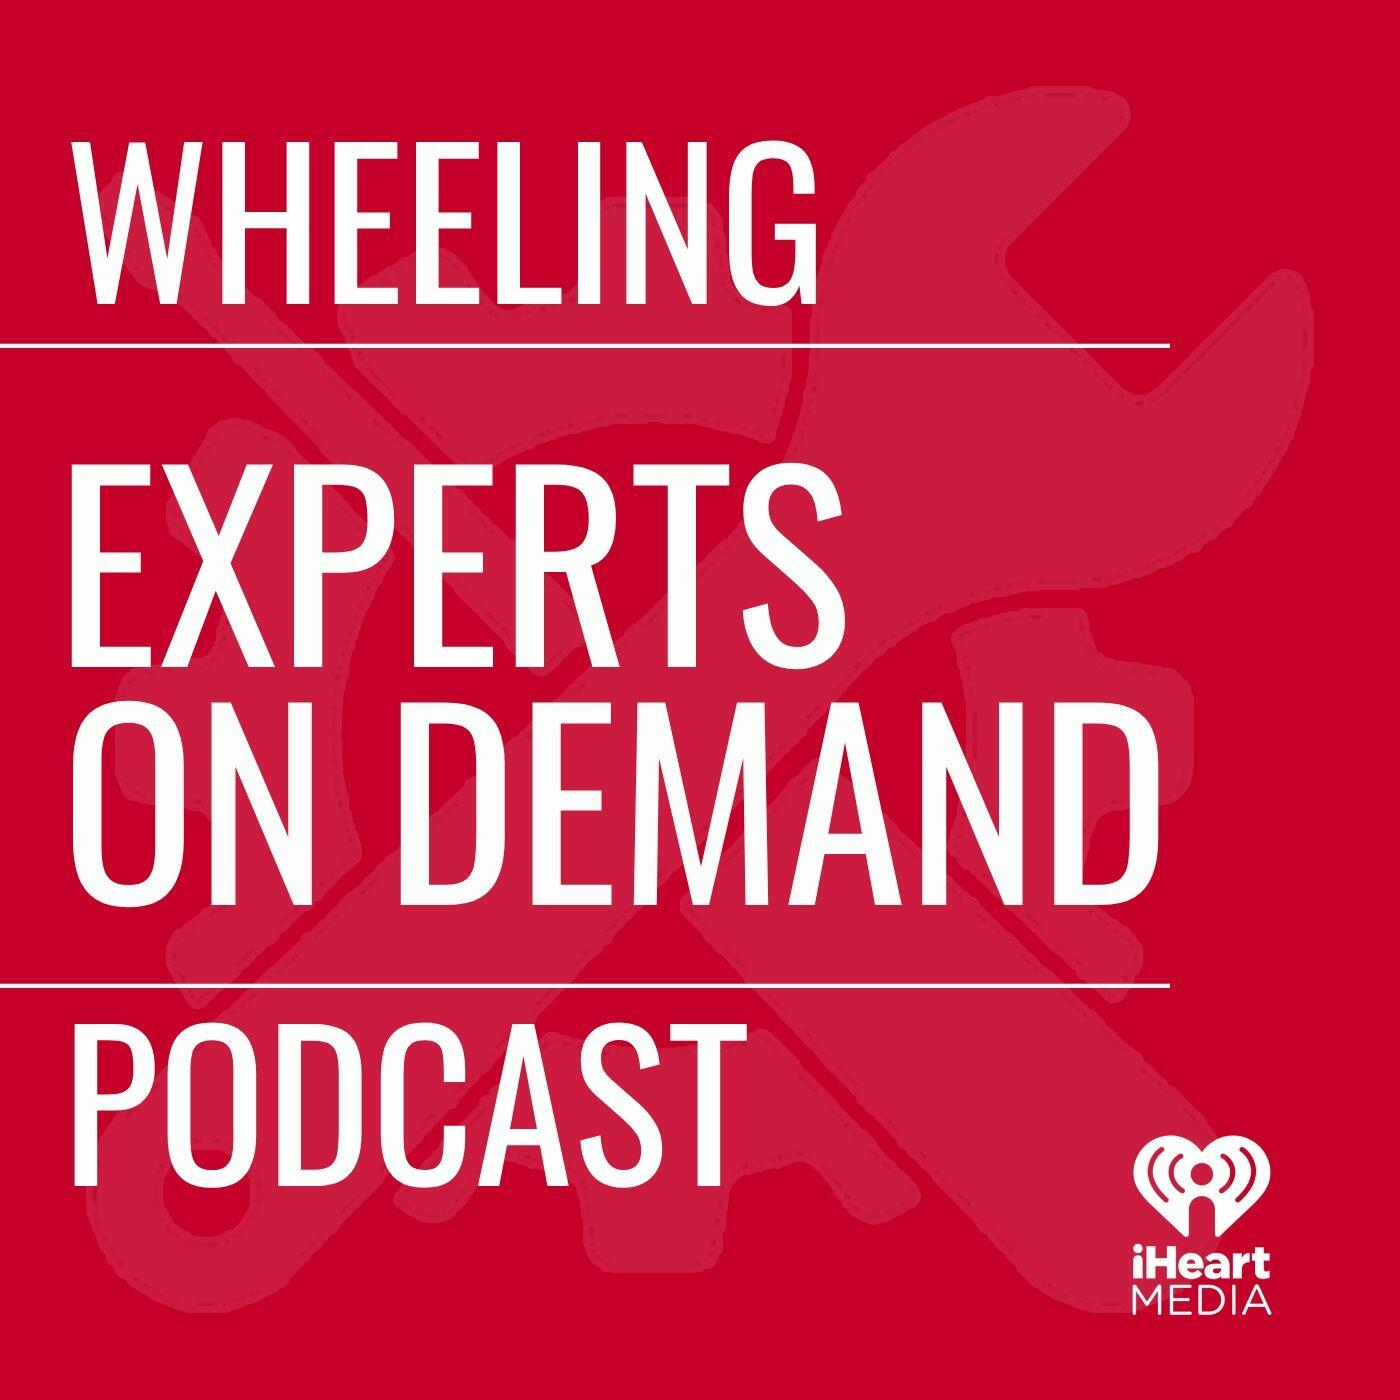 Wheeling's Experts On Demand